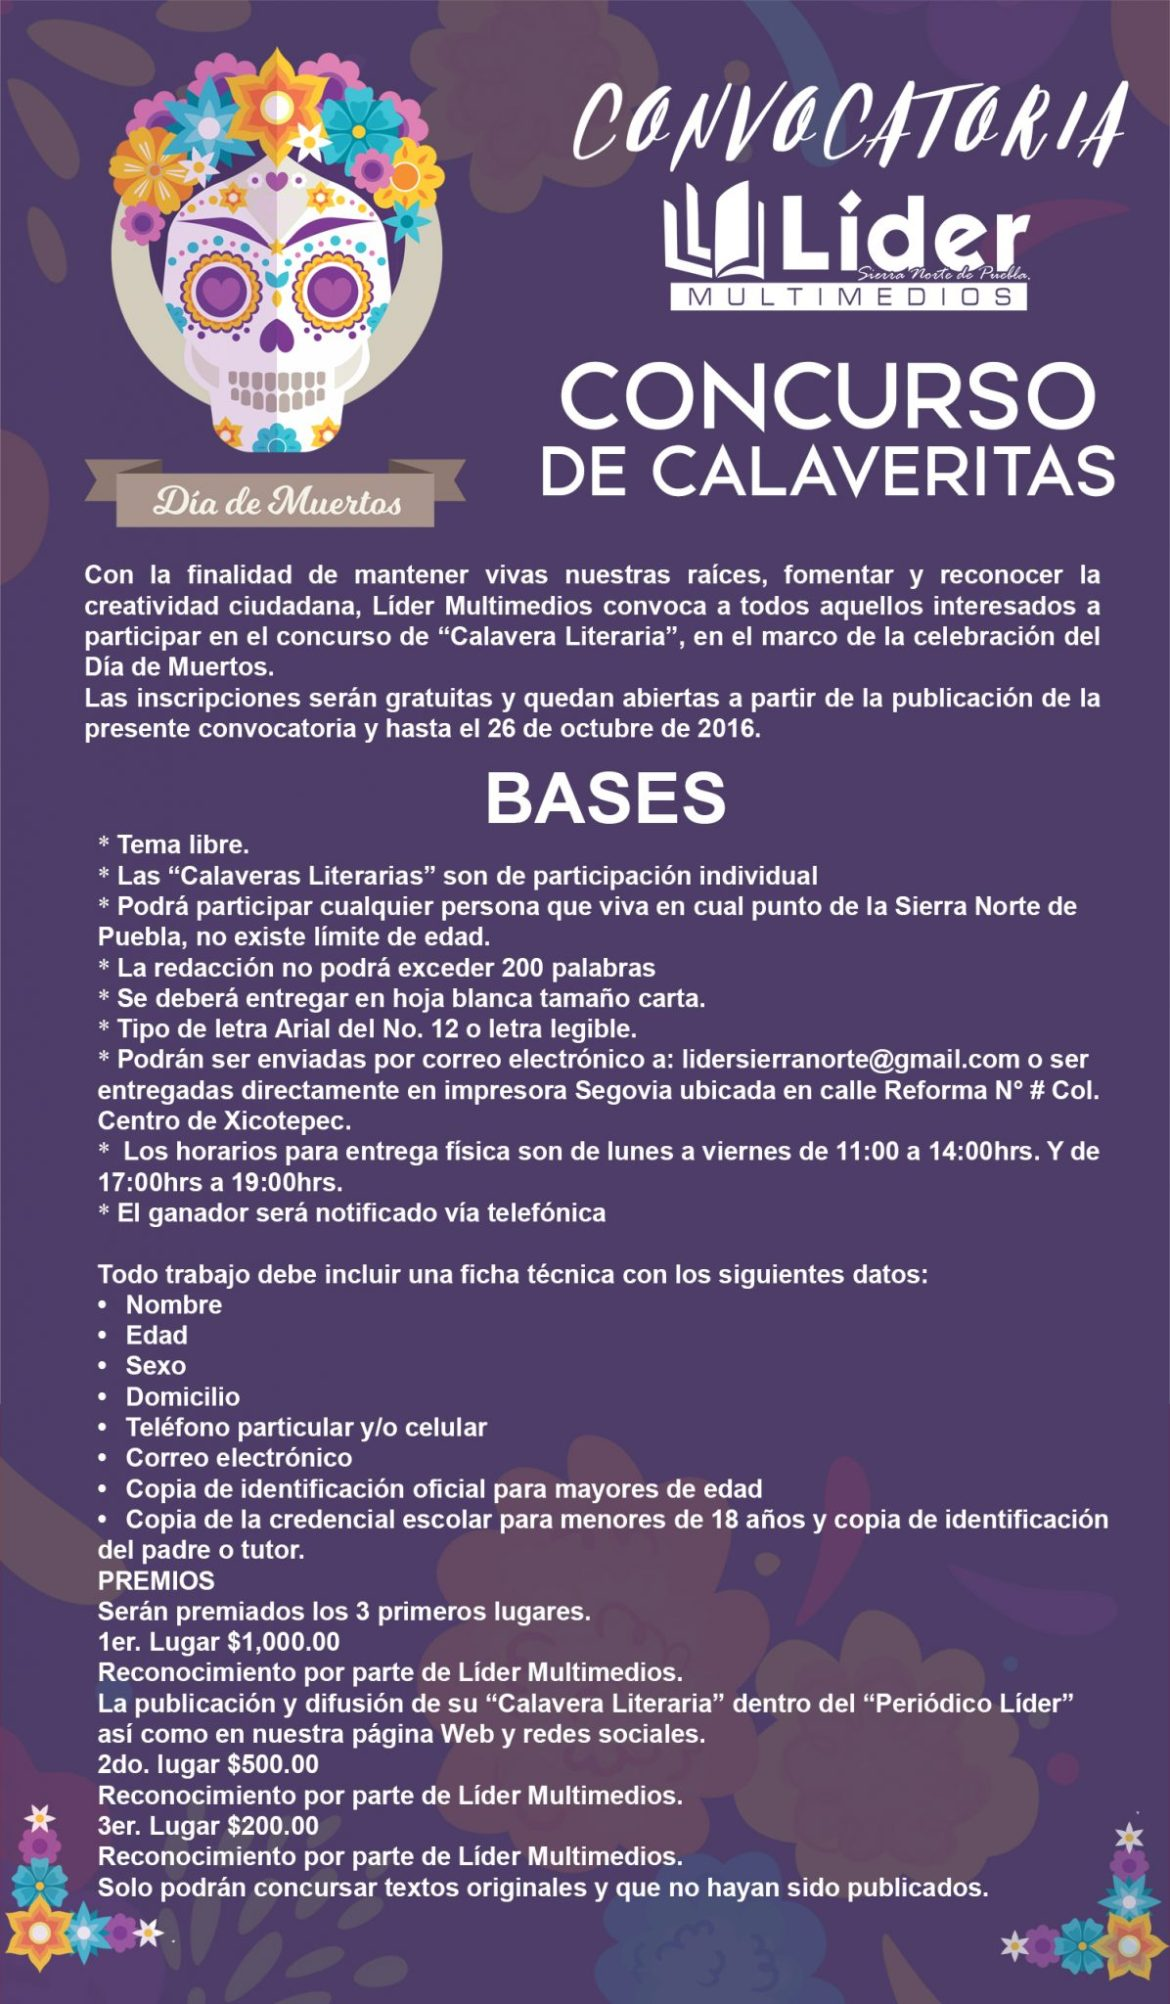 convocatoria-lider-calaveritas-1